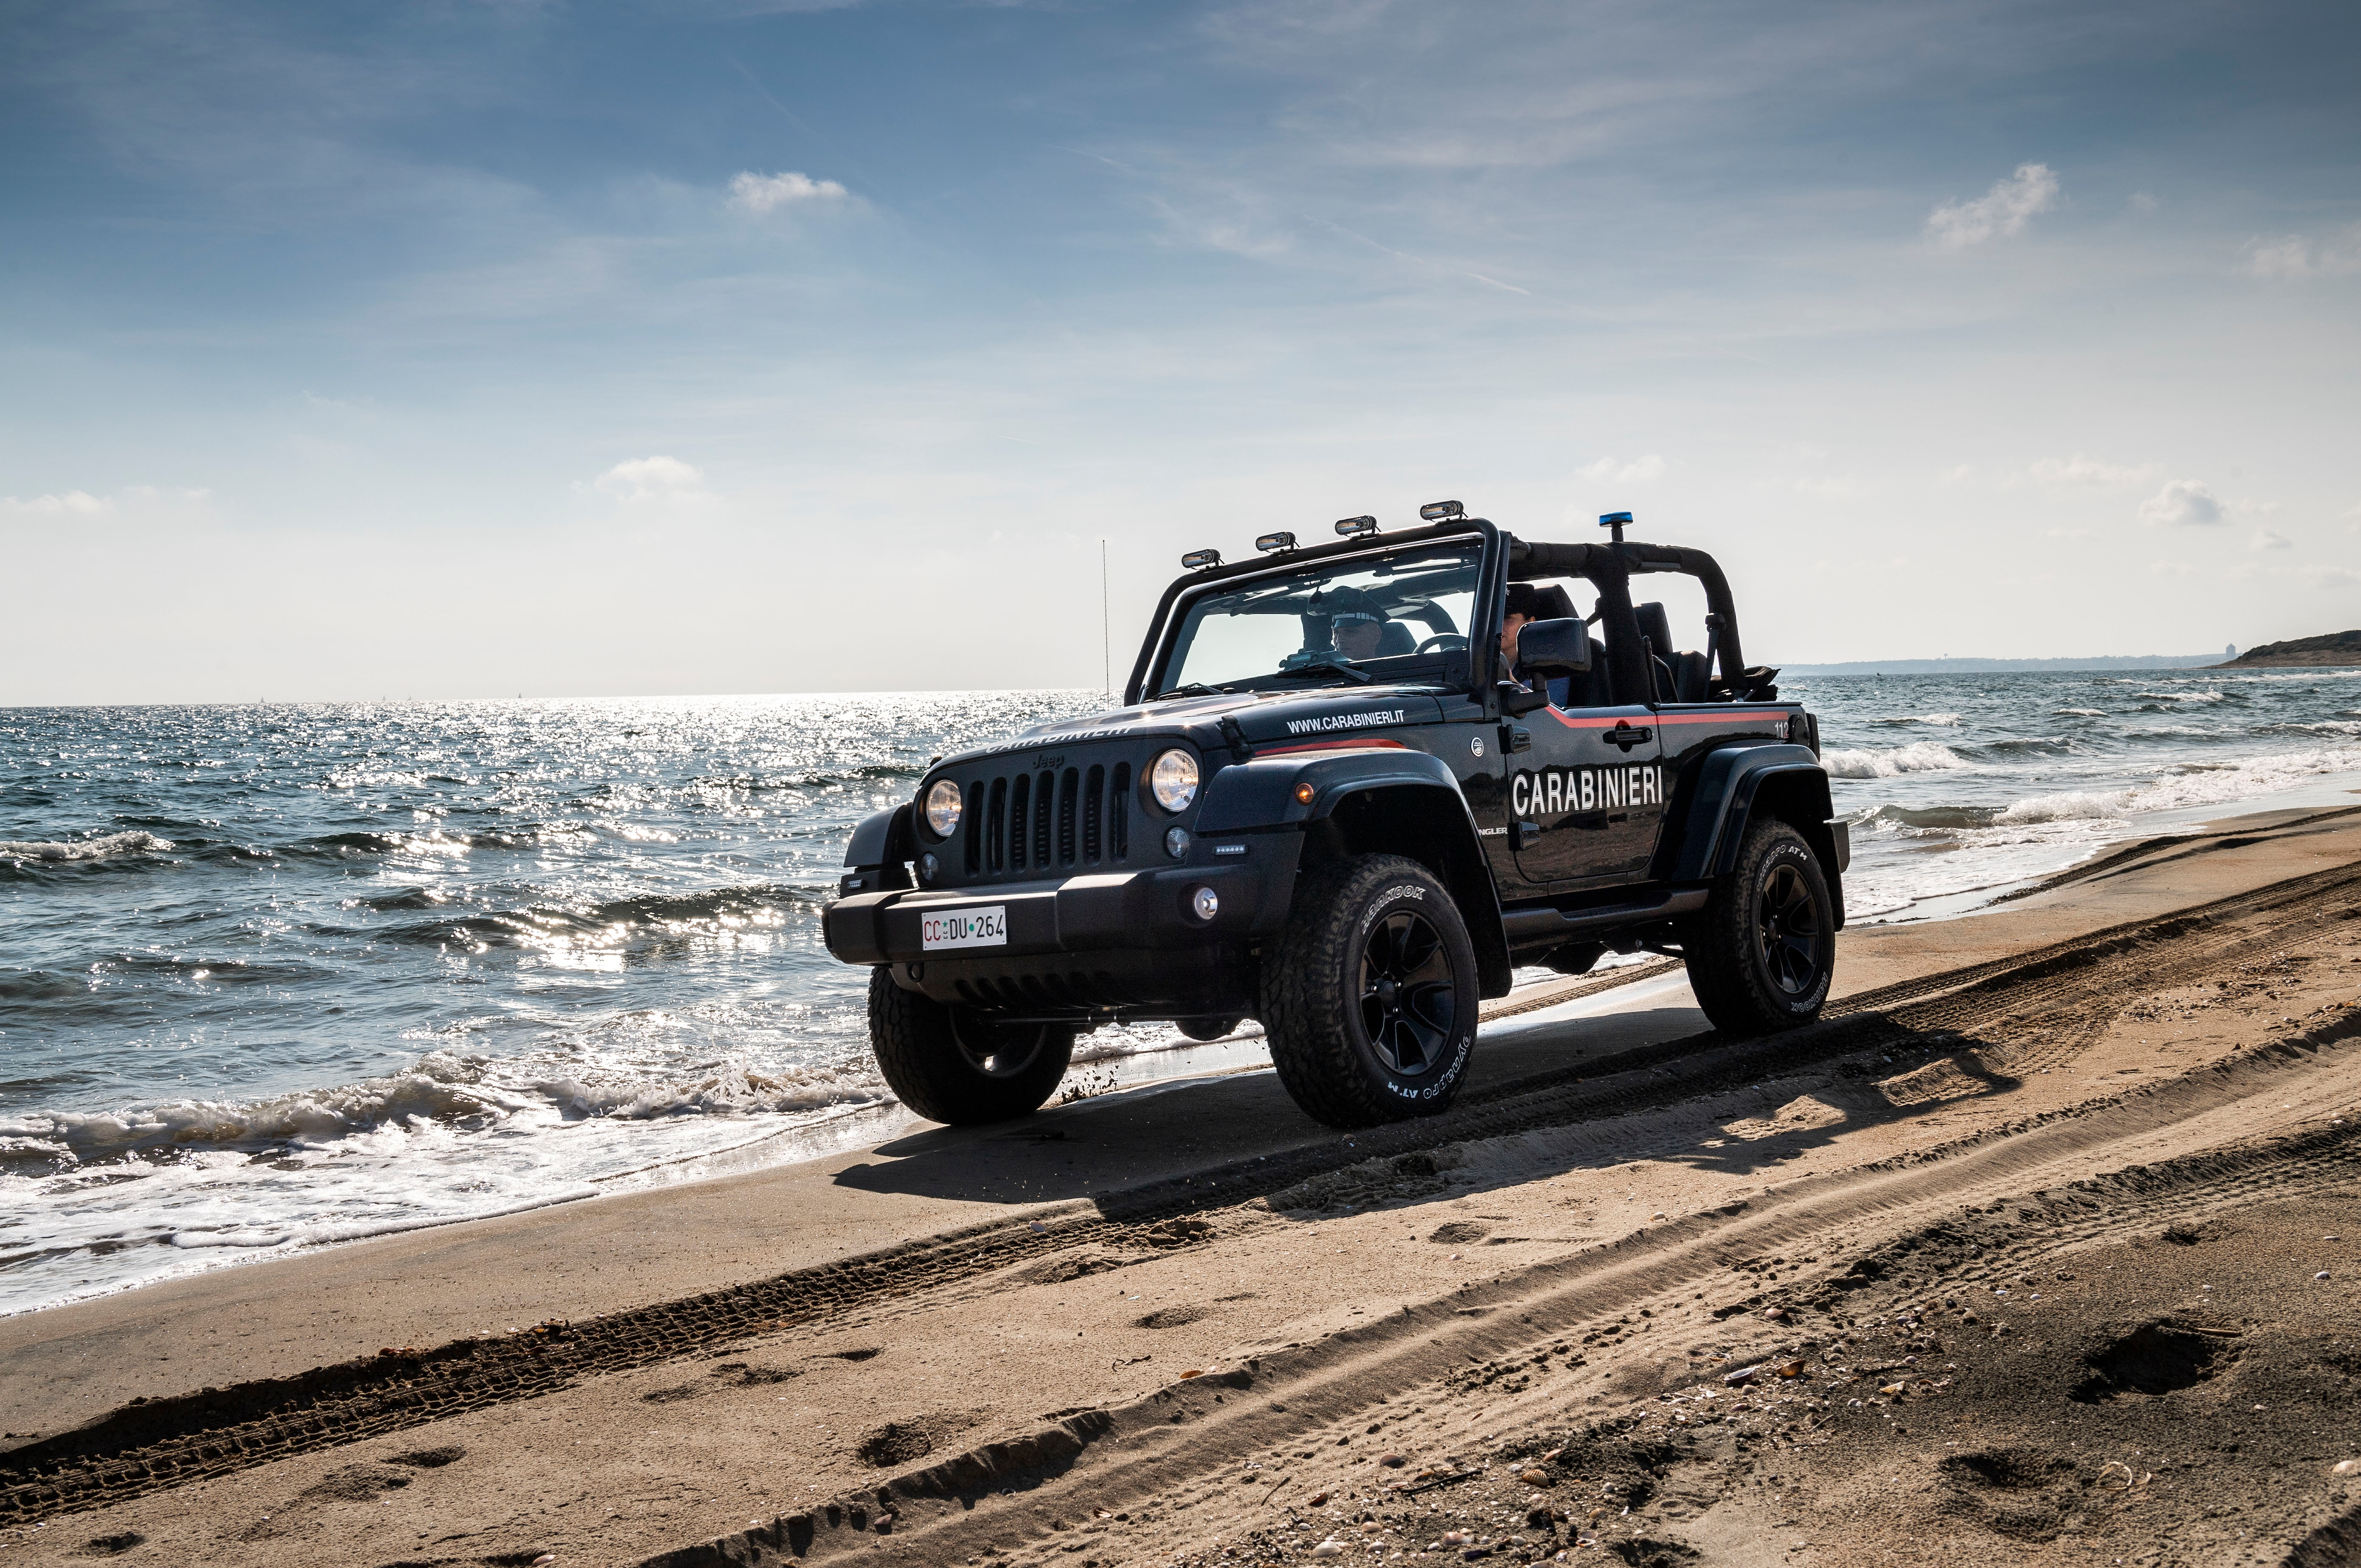 Jeep Wrangler Beach Patrol Vehicle Reports For Duty Automobile Leaking Roof 1 10